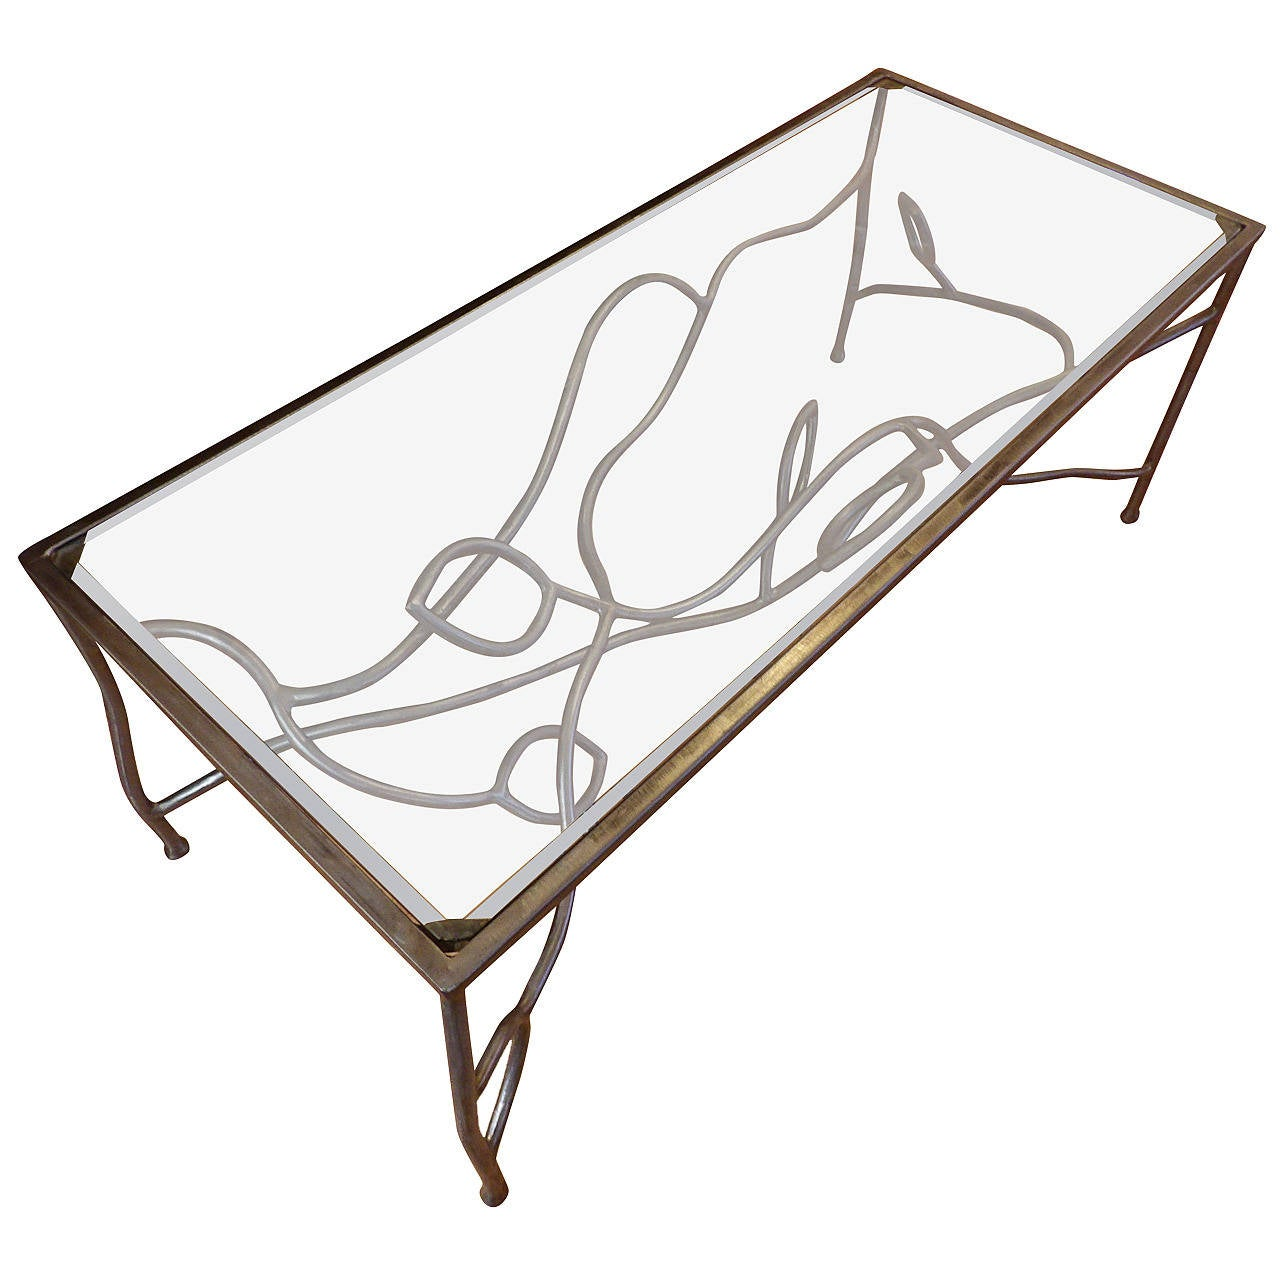 Unique Artisan Made Iron And Glass Asymmetrical Coffee Table At 1stdibs